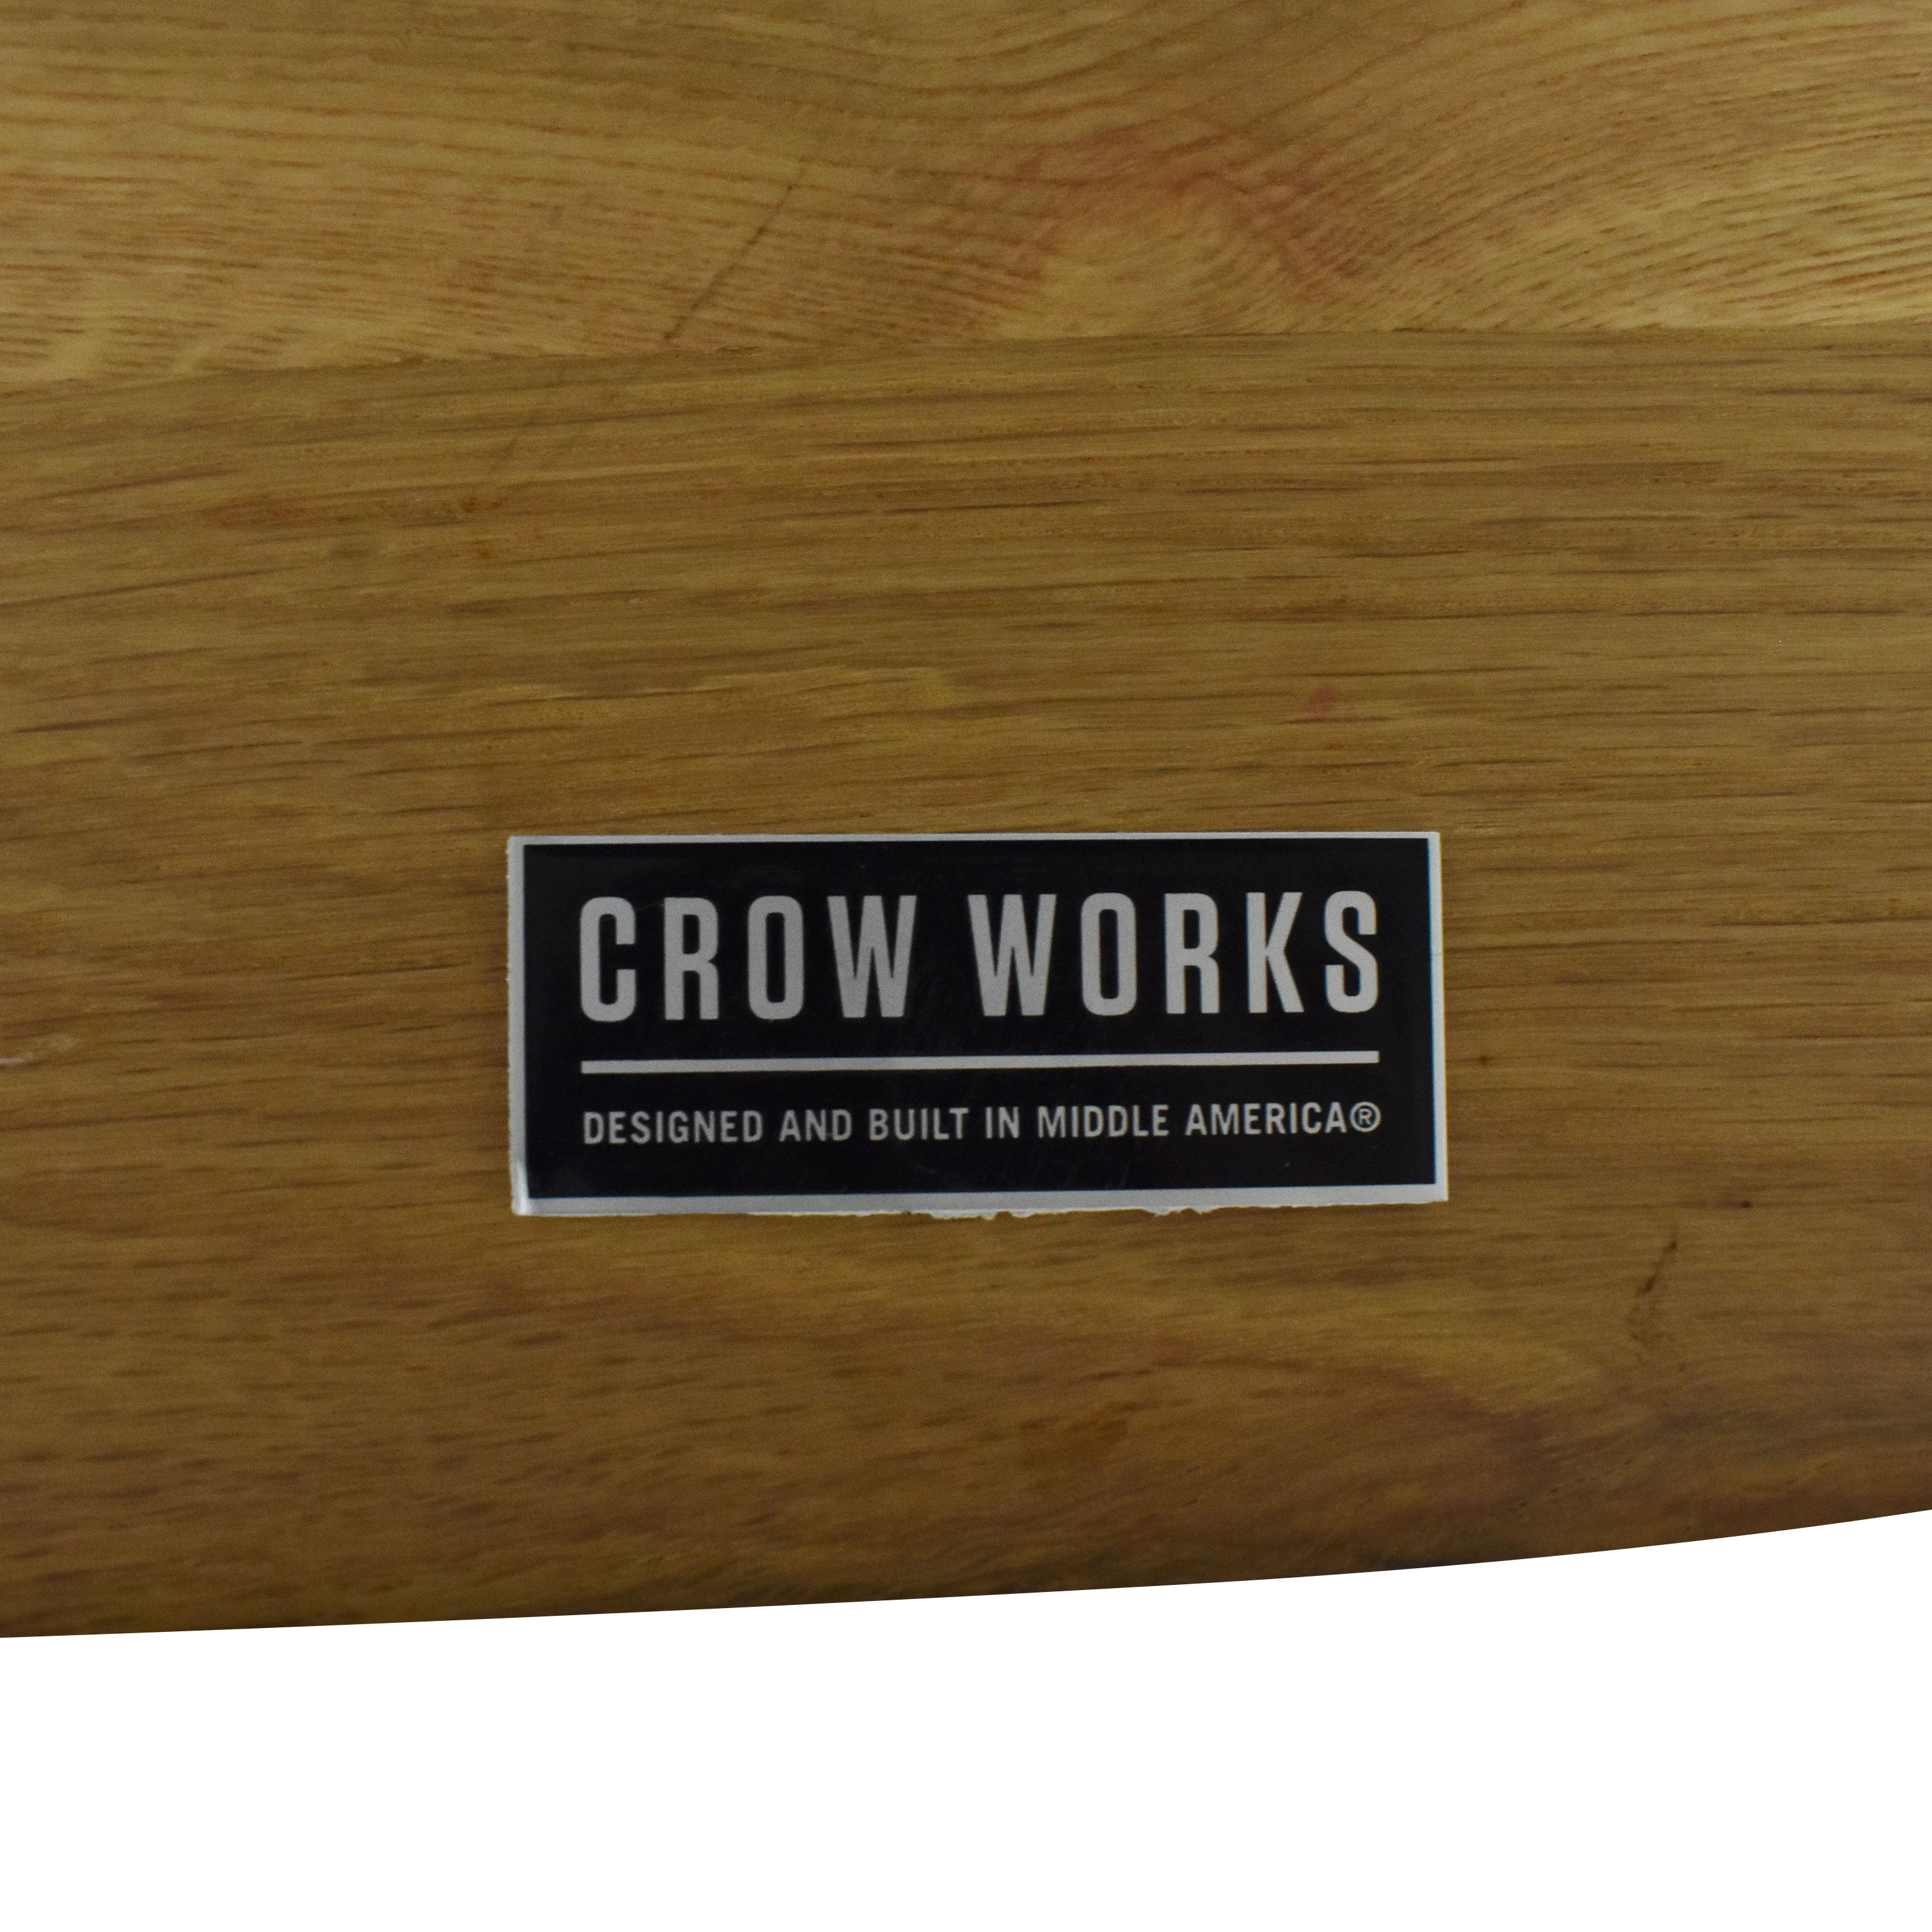 Crow Works Crow Works Fixed I-Beam Square Table used